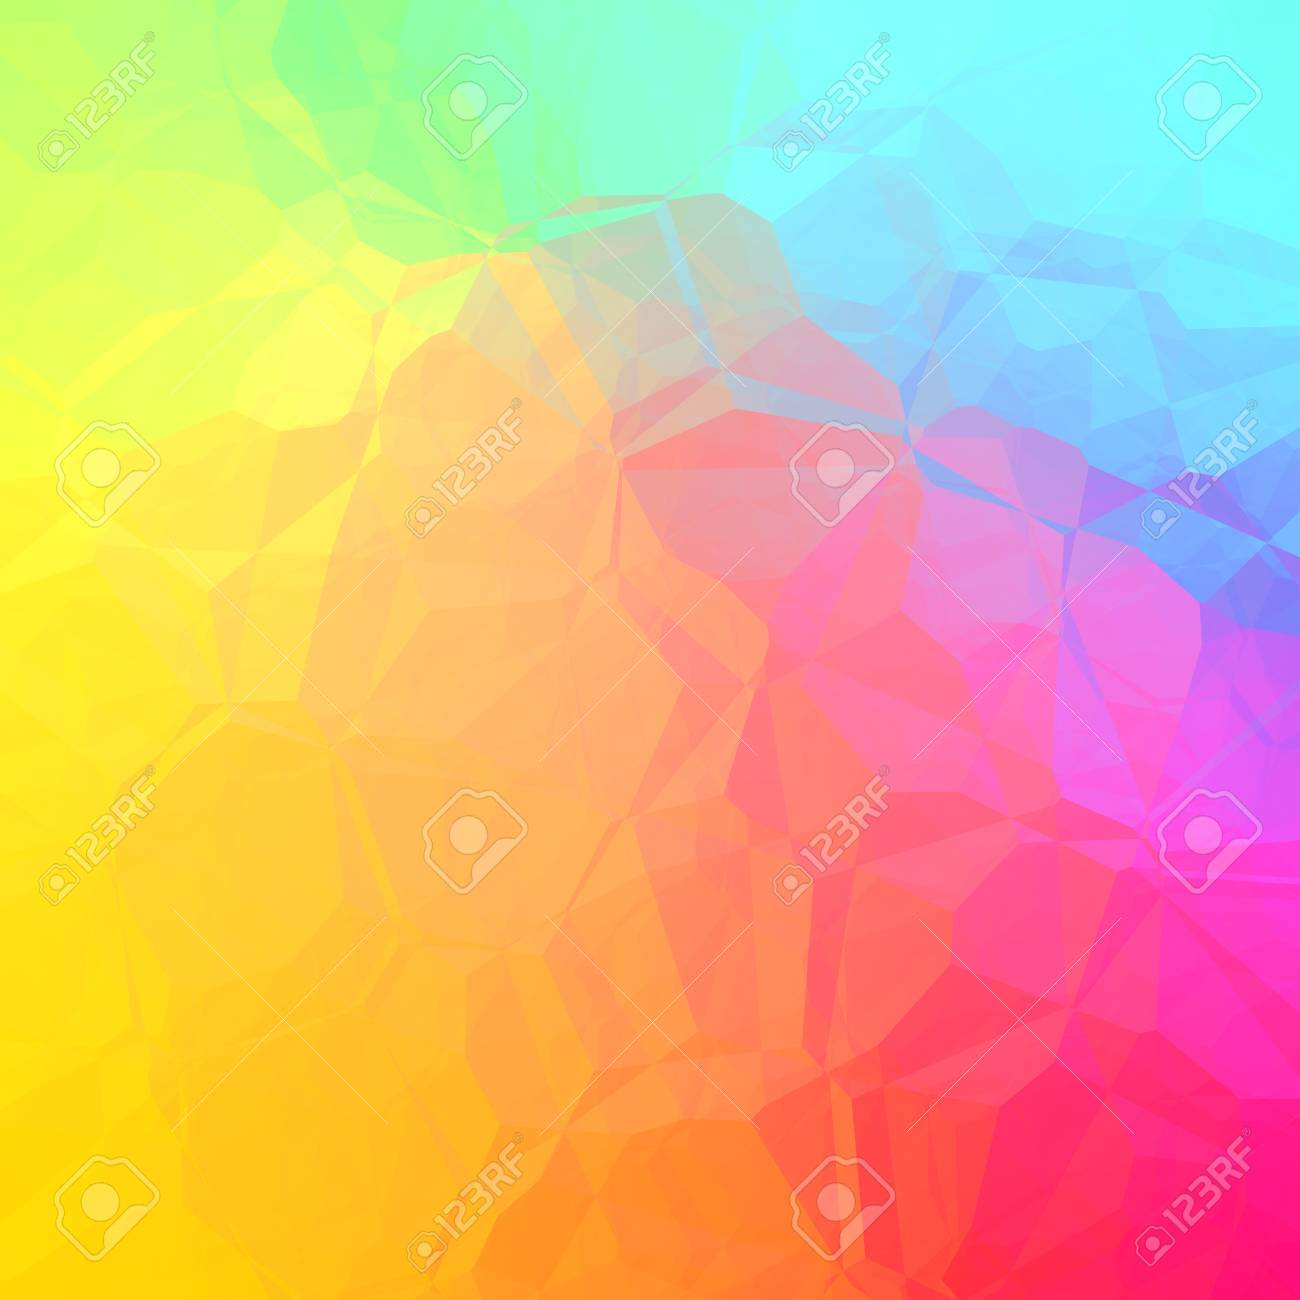 Blue Yellow Pink Green Beautiful Gbackground Abstract Geometric